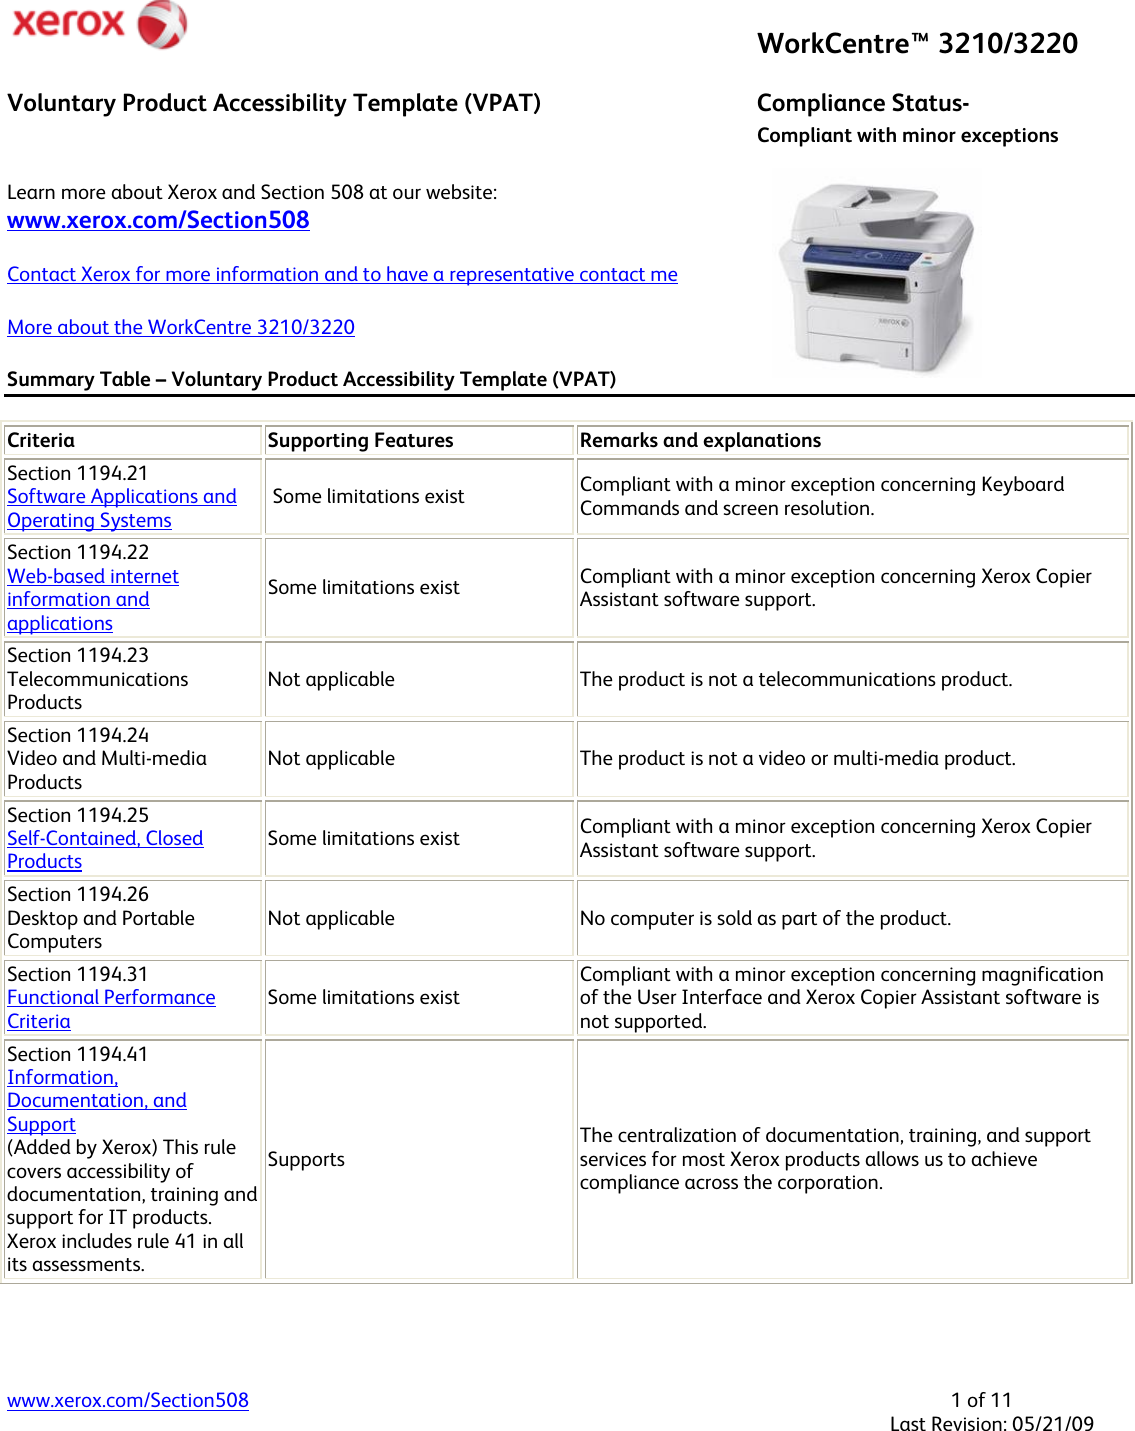 Xerox Workcentre 3210 Users Manual Voluntary Product Accessibility ...